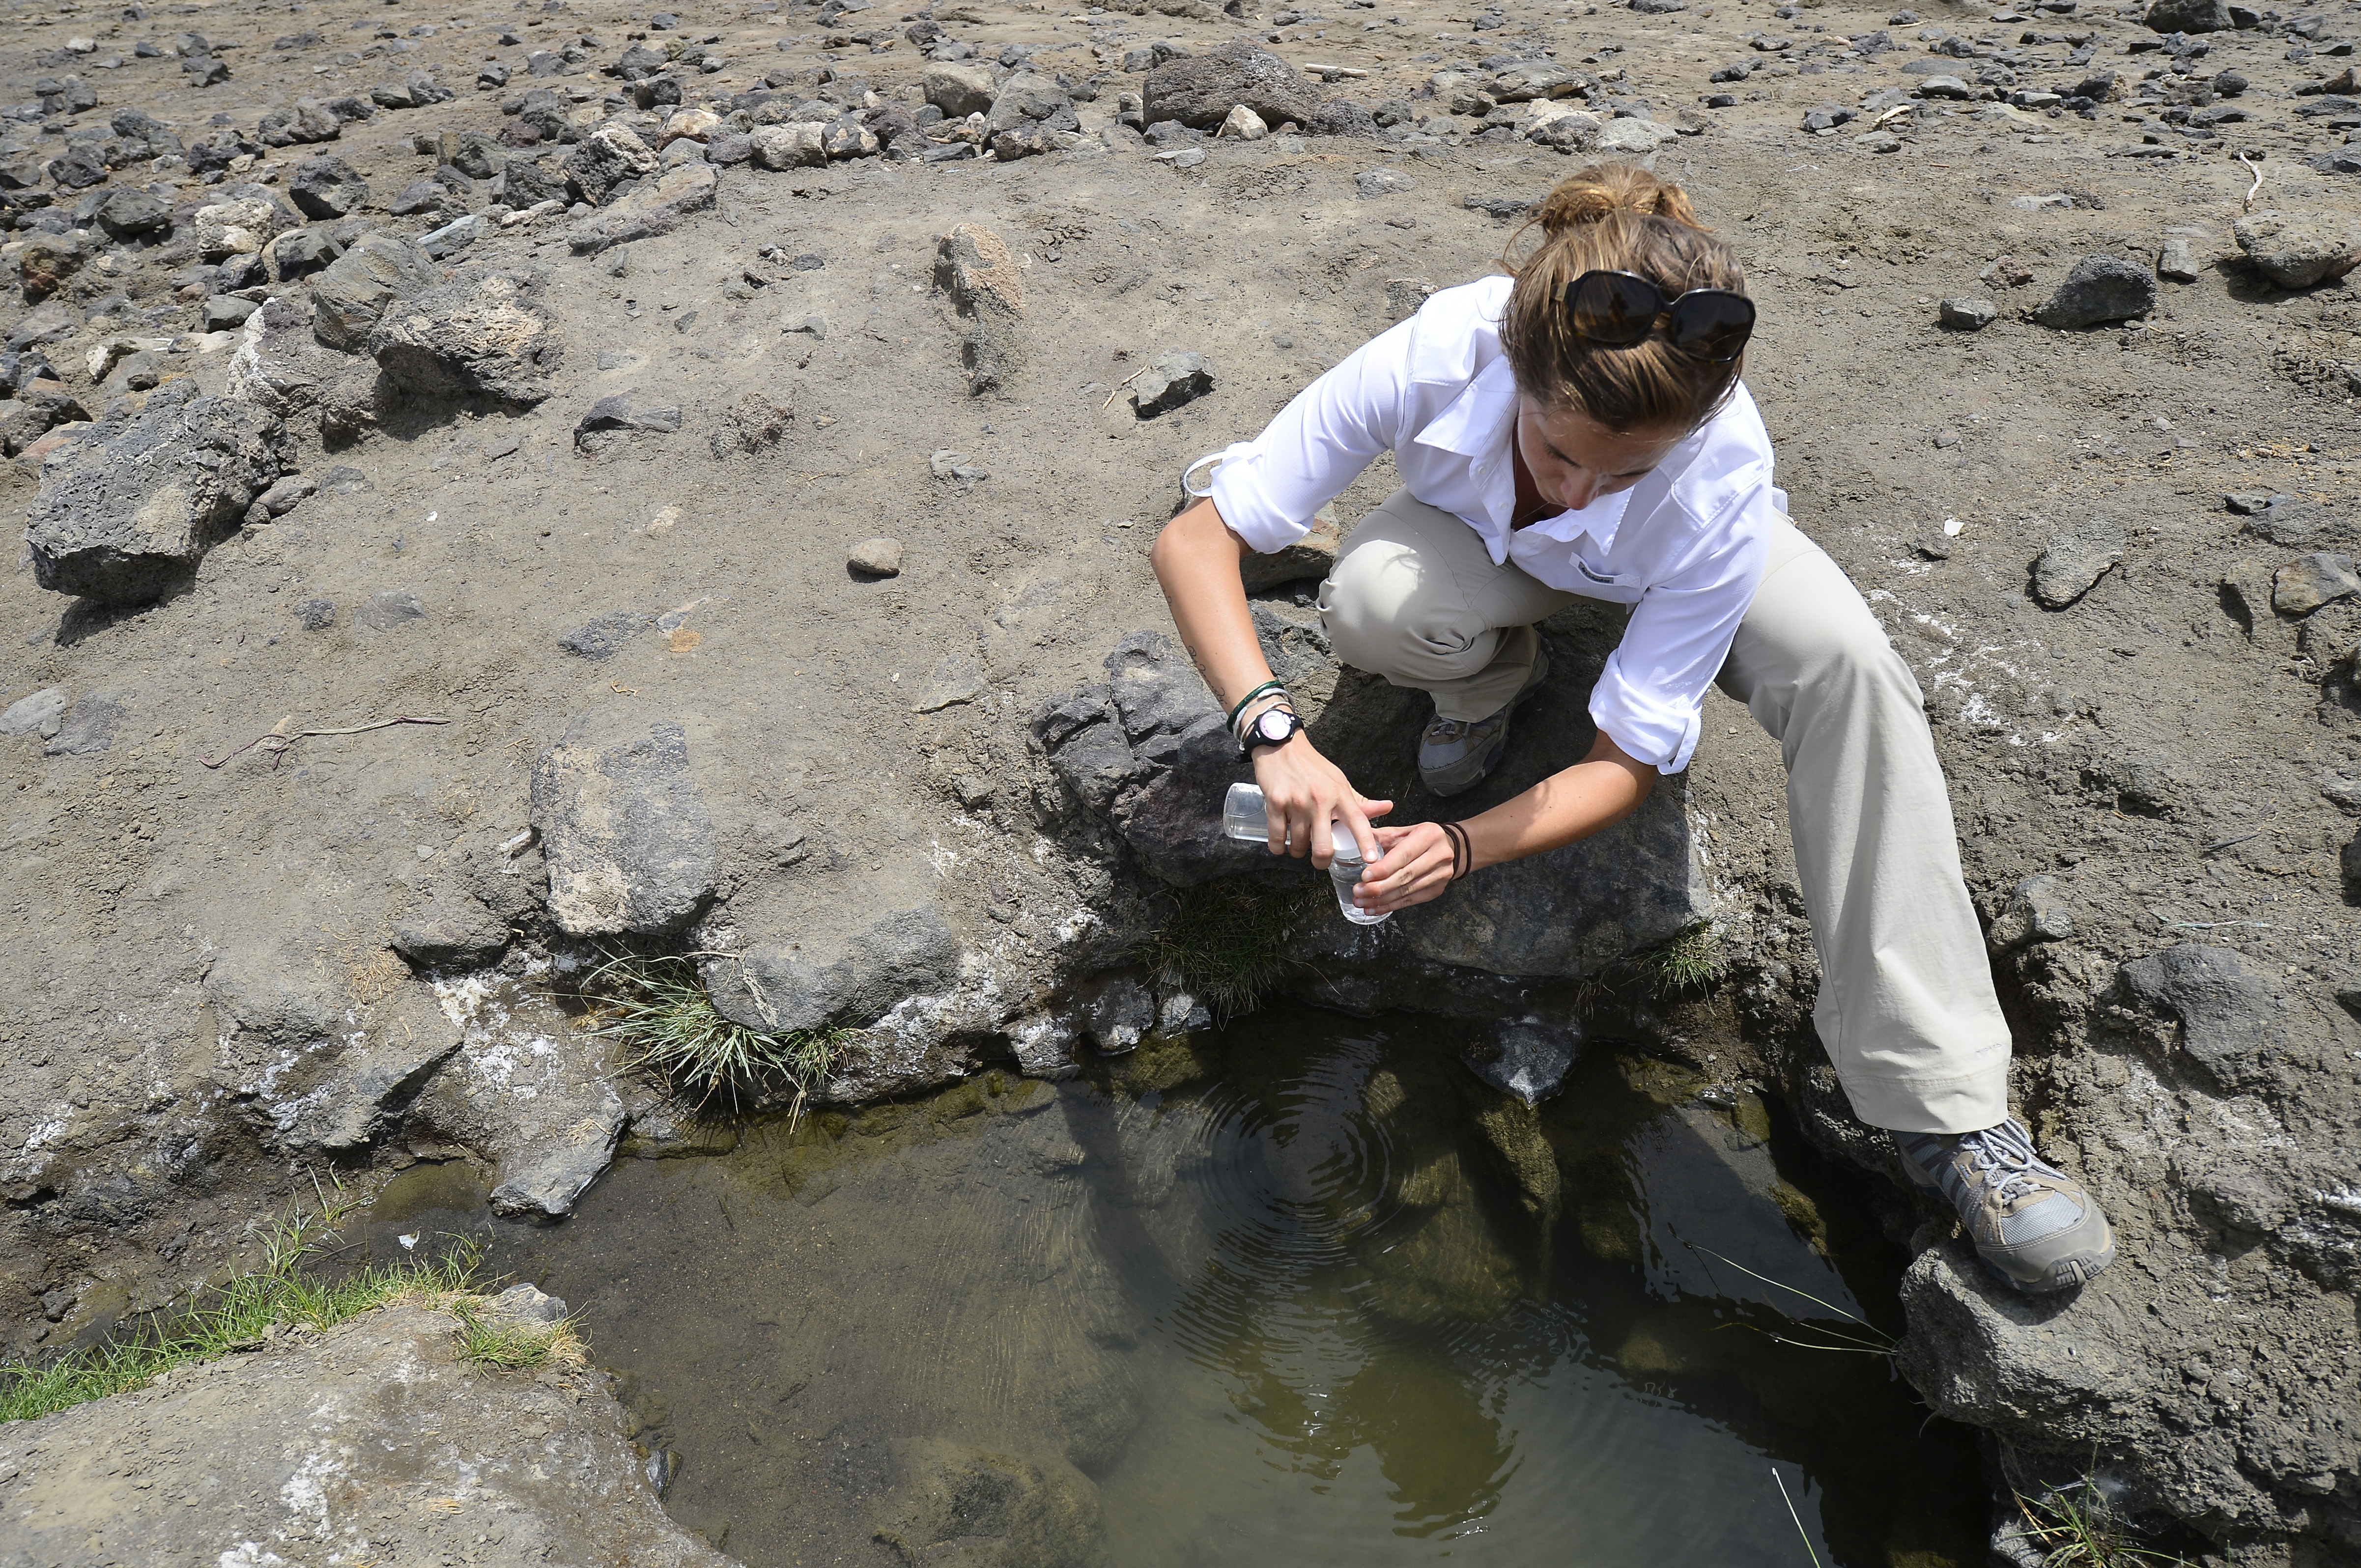 U.S. Army Spc. Caitlyn Lacomb, 404th Civil Affairs Battalion, collects a water sample in a creek near the arid Lac Abbé in Djibouti, May 20, 2015. The team assigned to Combined Joint Task Force- Horn of Africa, traveled approximately 100 miles to gather water samples and learn about the biology of the lake, along with it's utility to the nearby village. While there, the elders said it has not rained in two years, causing a drought and increasing malnourishment amongst the population. (U.S. Air Force photo by Senior Airman Nesha Humes)